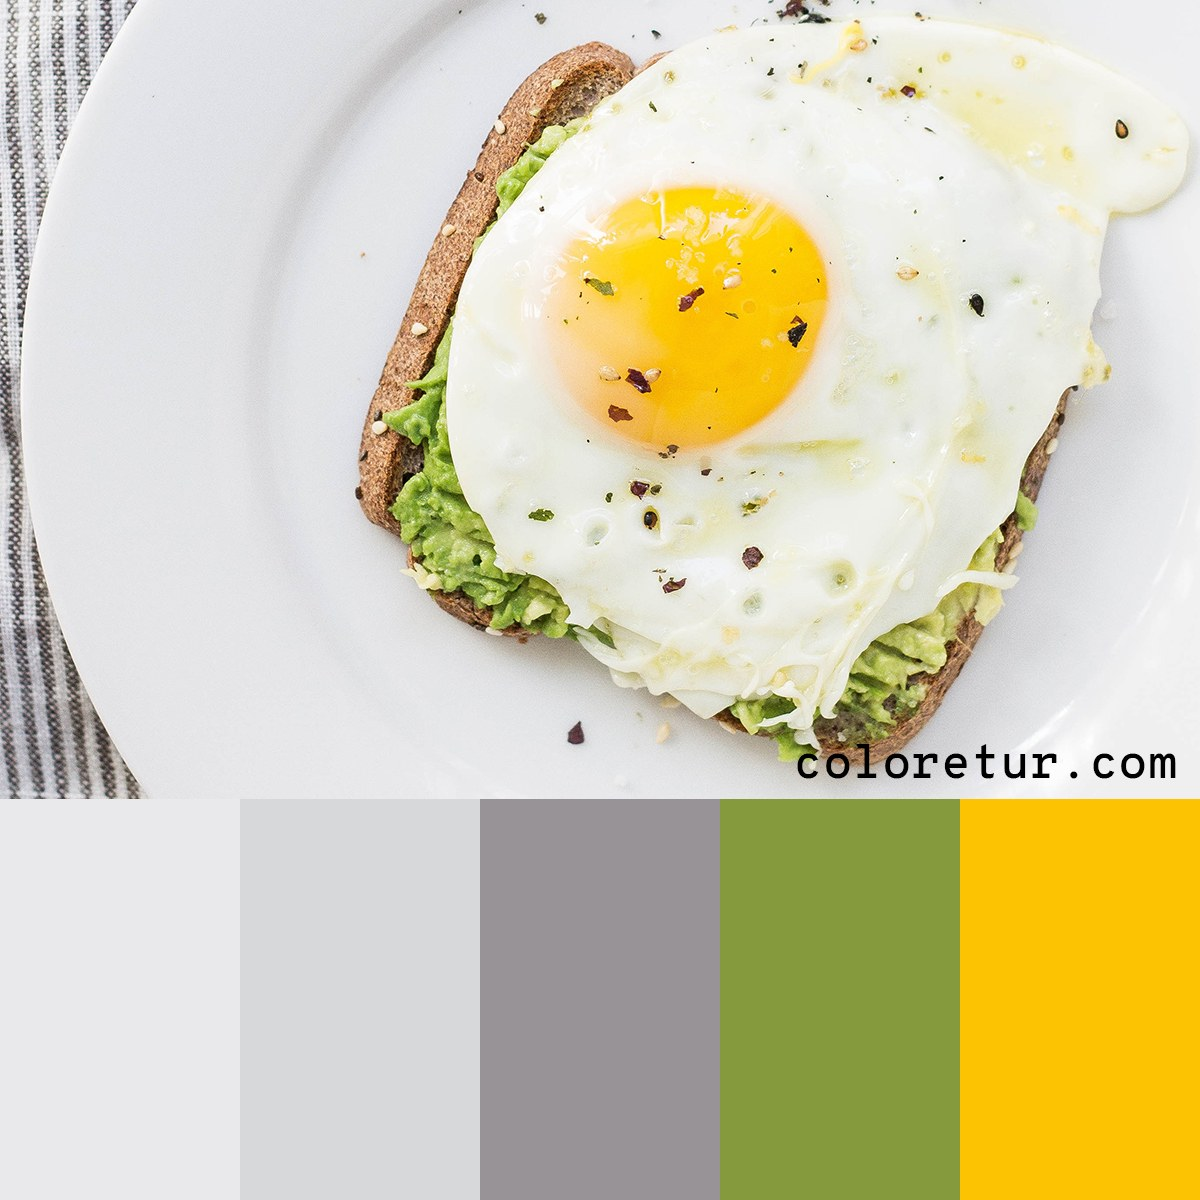 A color palette from smashed avo, classic meal for millennials.